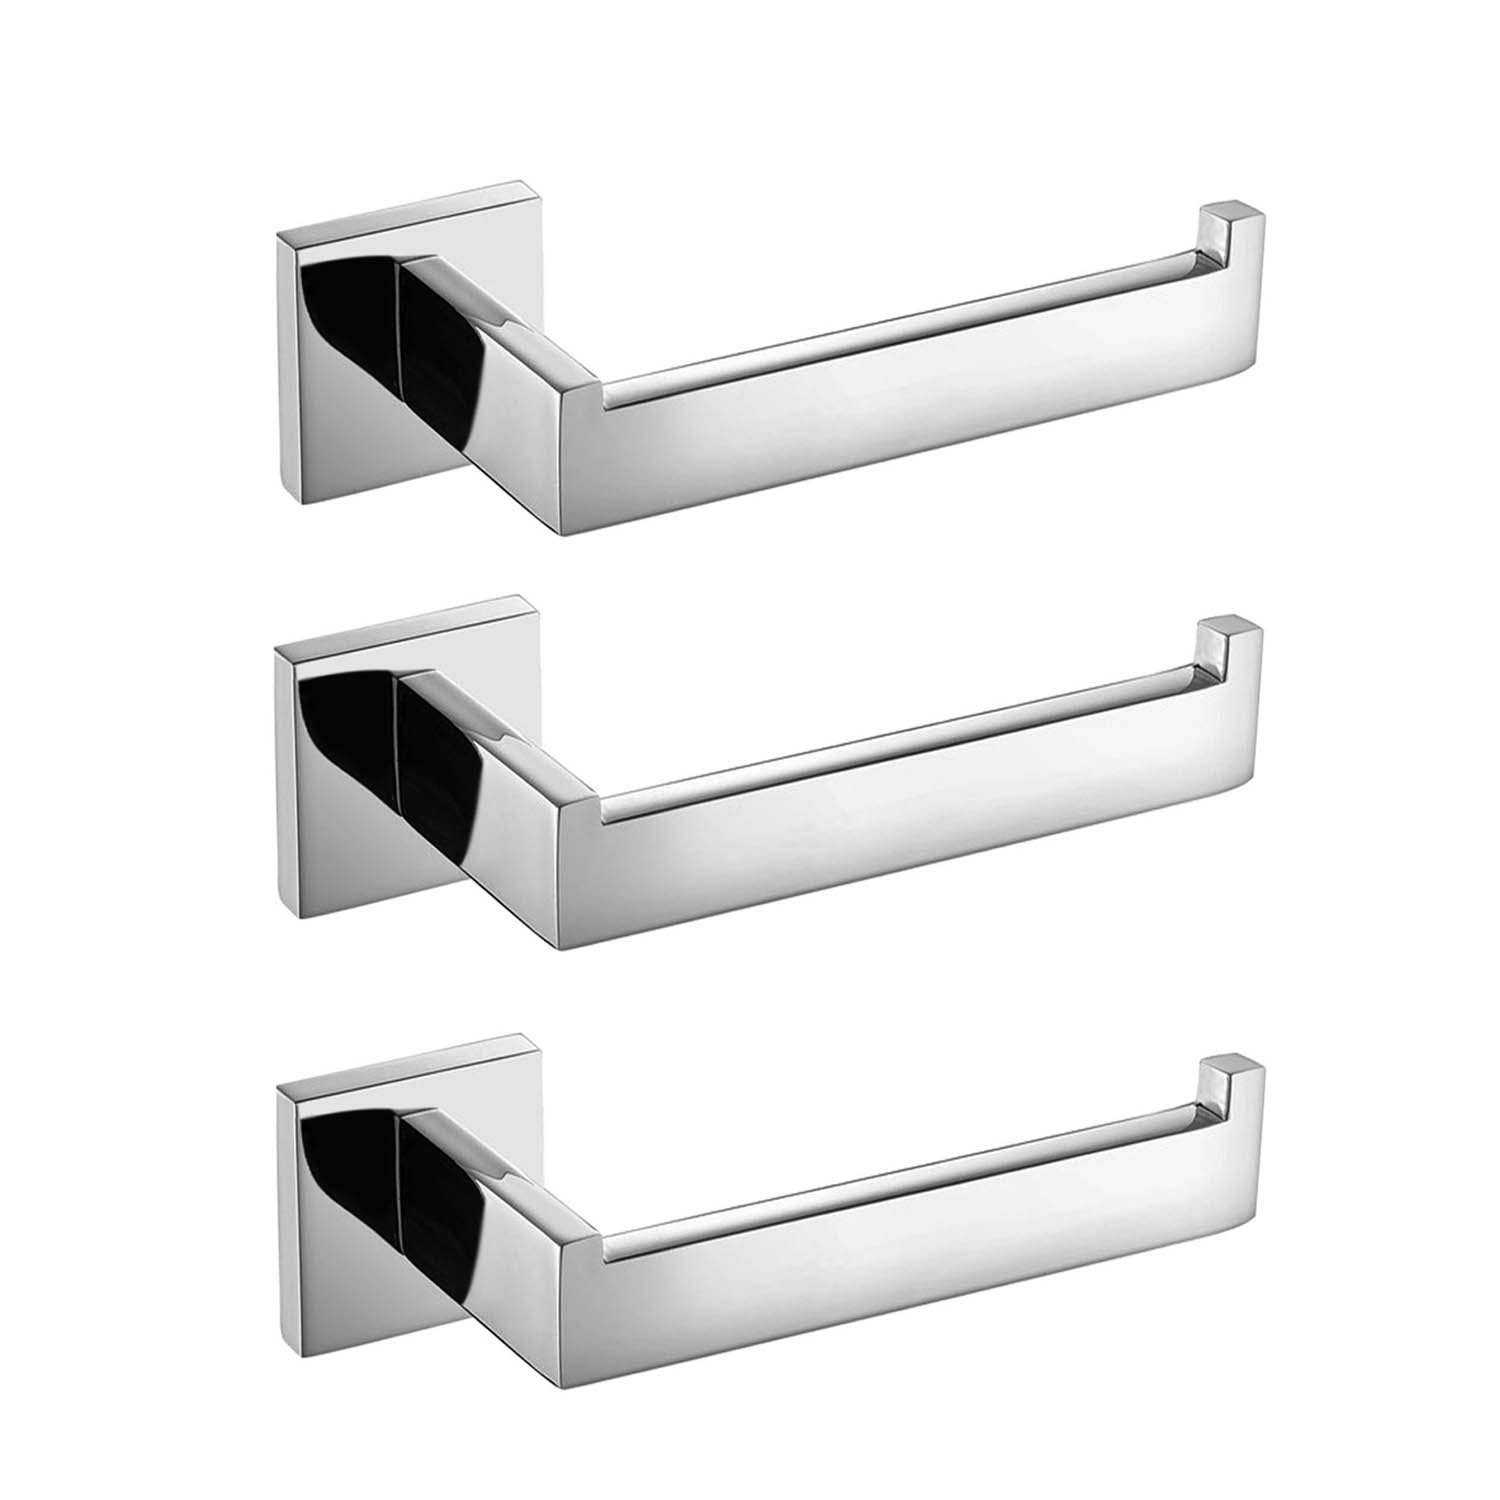 3pcs Luxury 304 Stainless Steel Chrome Finished Toilet Paper Holder Roll Quadrate Wall Mounted Mirror Polished Bathroom Accessories